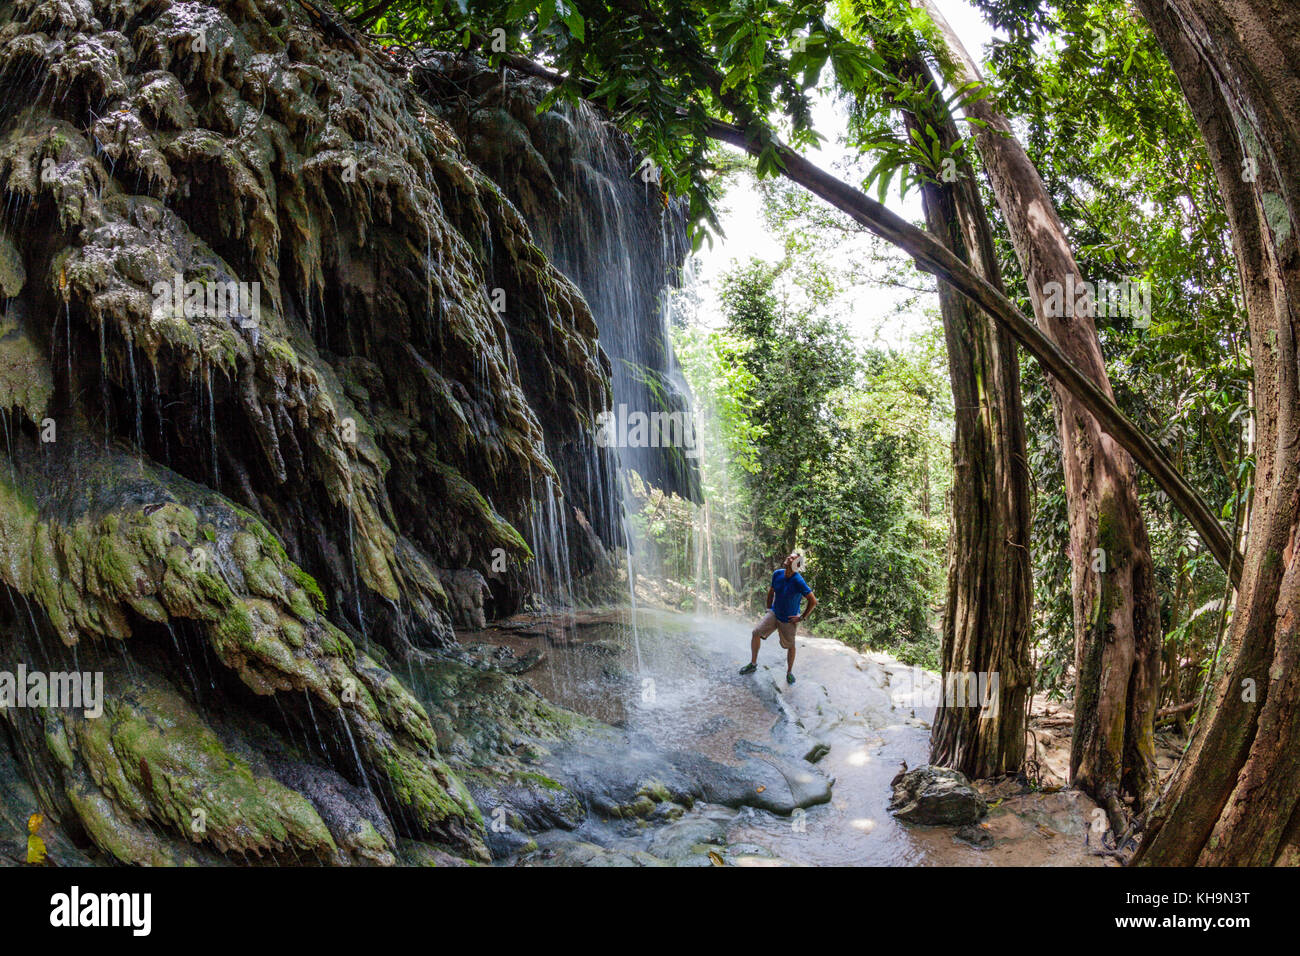 Hughs Dale Waterfall, Christmas Island, Australia - Stock Image